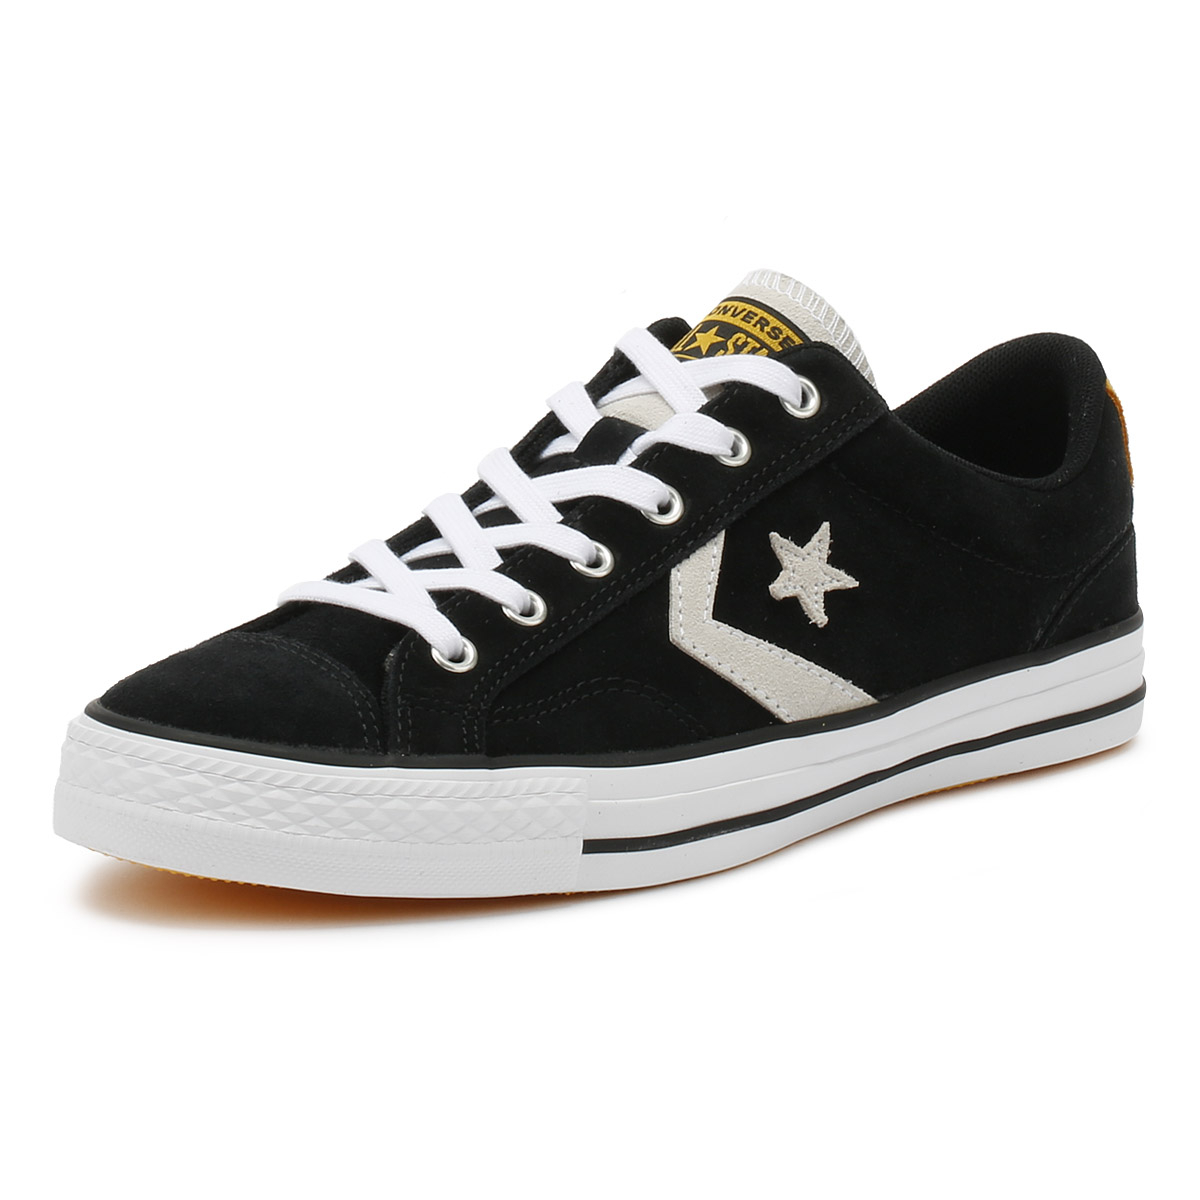 0fe6892fea25 Details about Converse Mens Trainers Black   White Star Player Suede Ox  Sport Casual Shoes